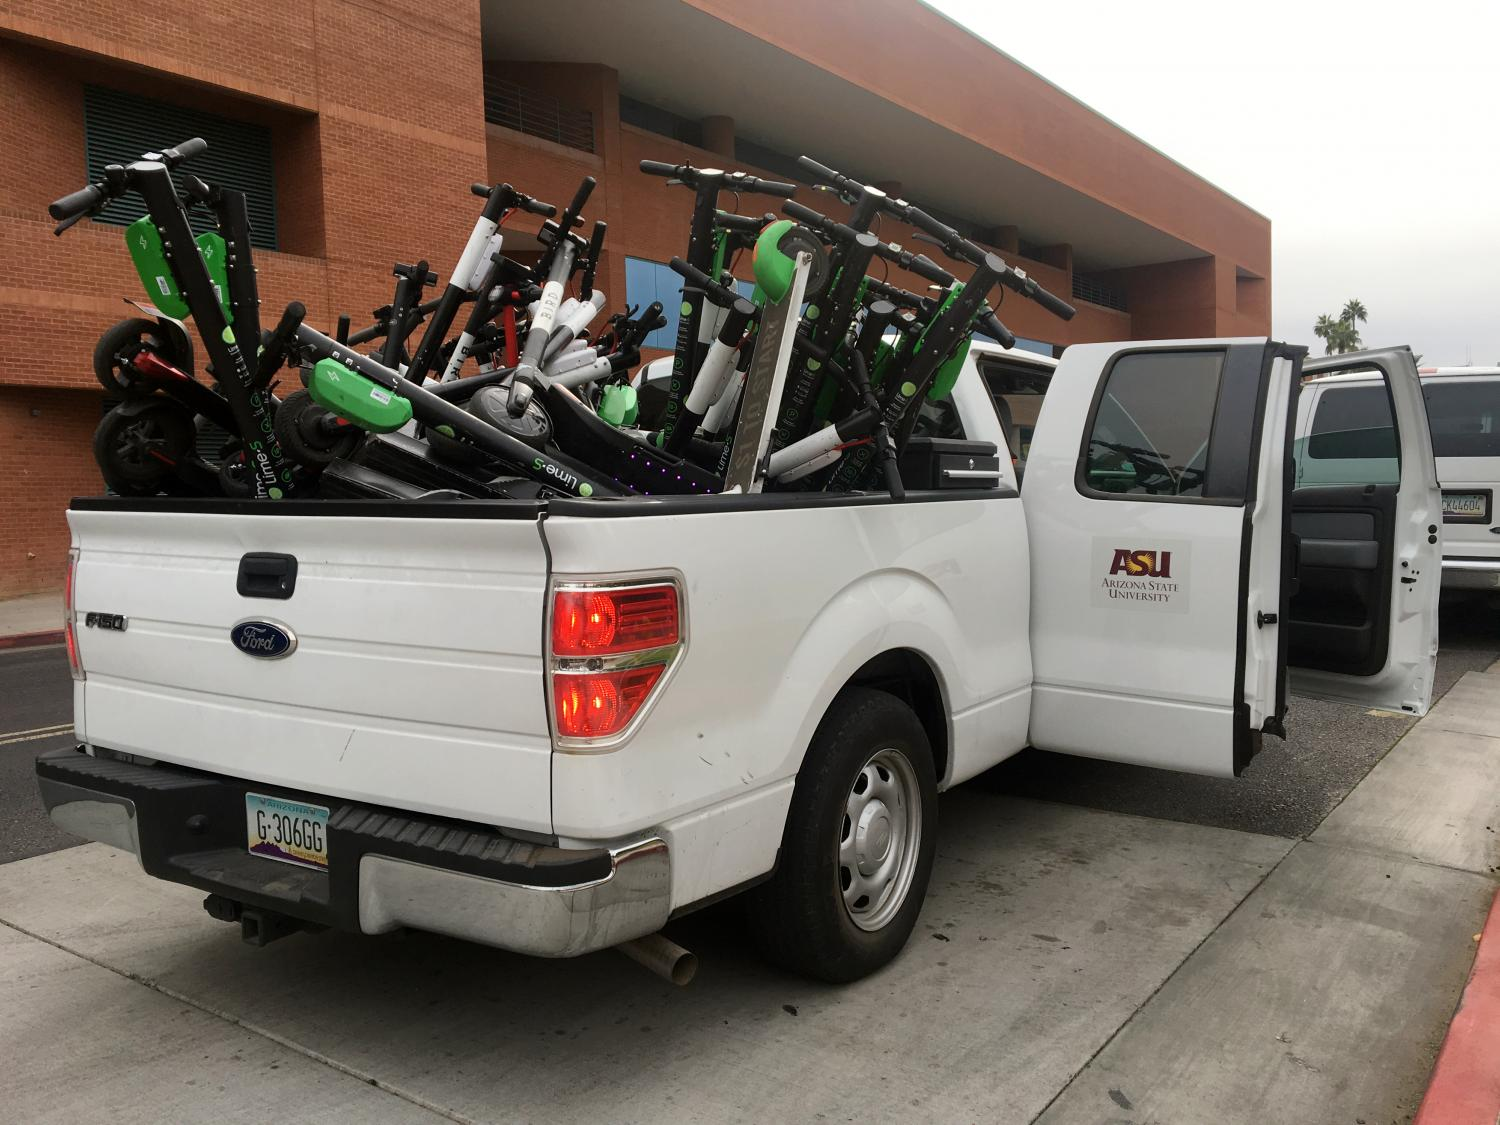 One Scooter Company Leaves Tempe | KJZZ